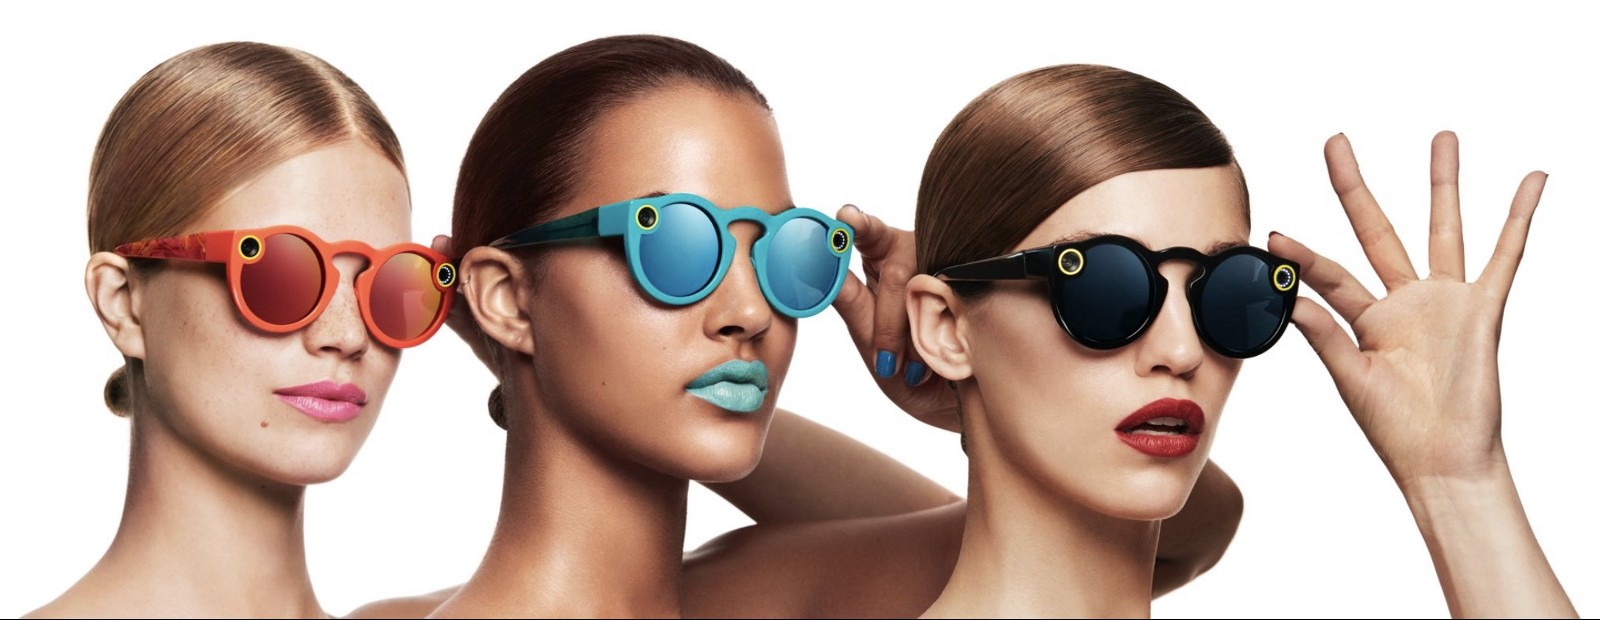 475c7ae6ba9 The Unfinished Story of how Snap(chat) Spectacles  is Executing the Best  Marketing Campaign in History